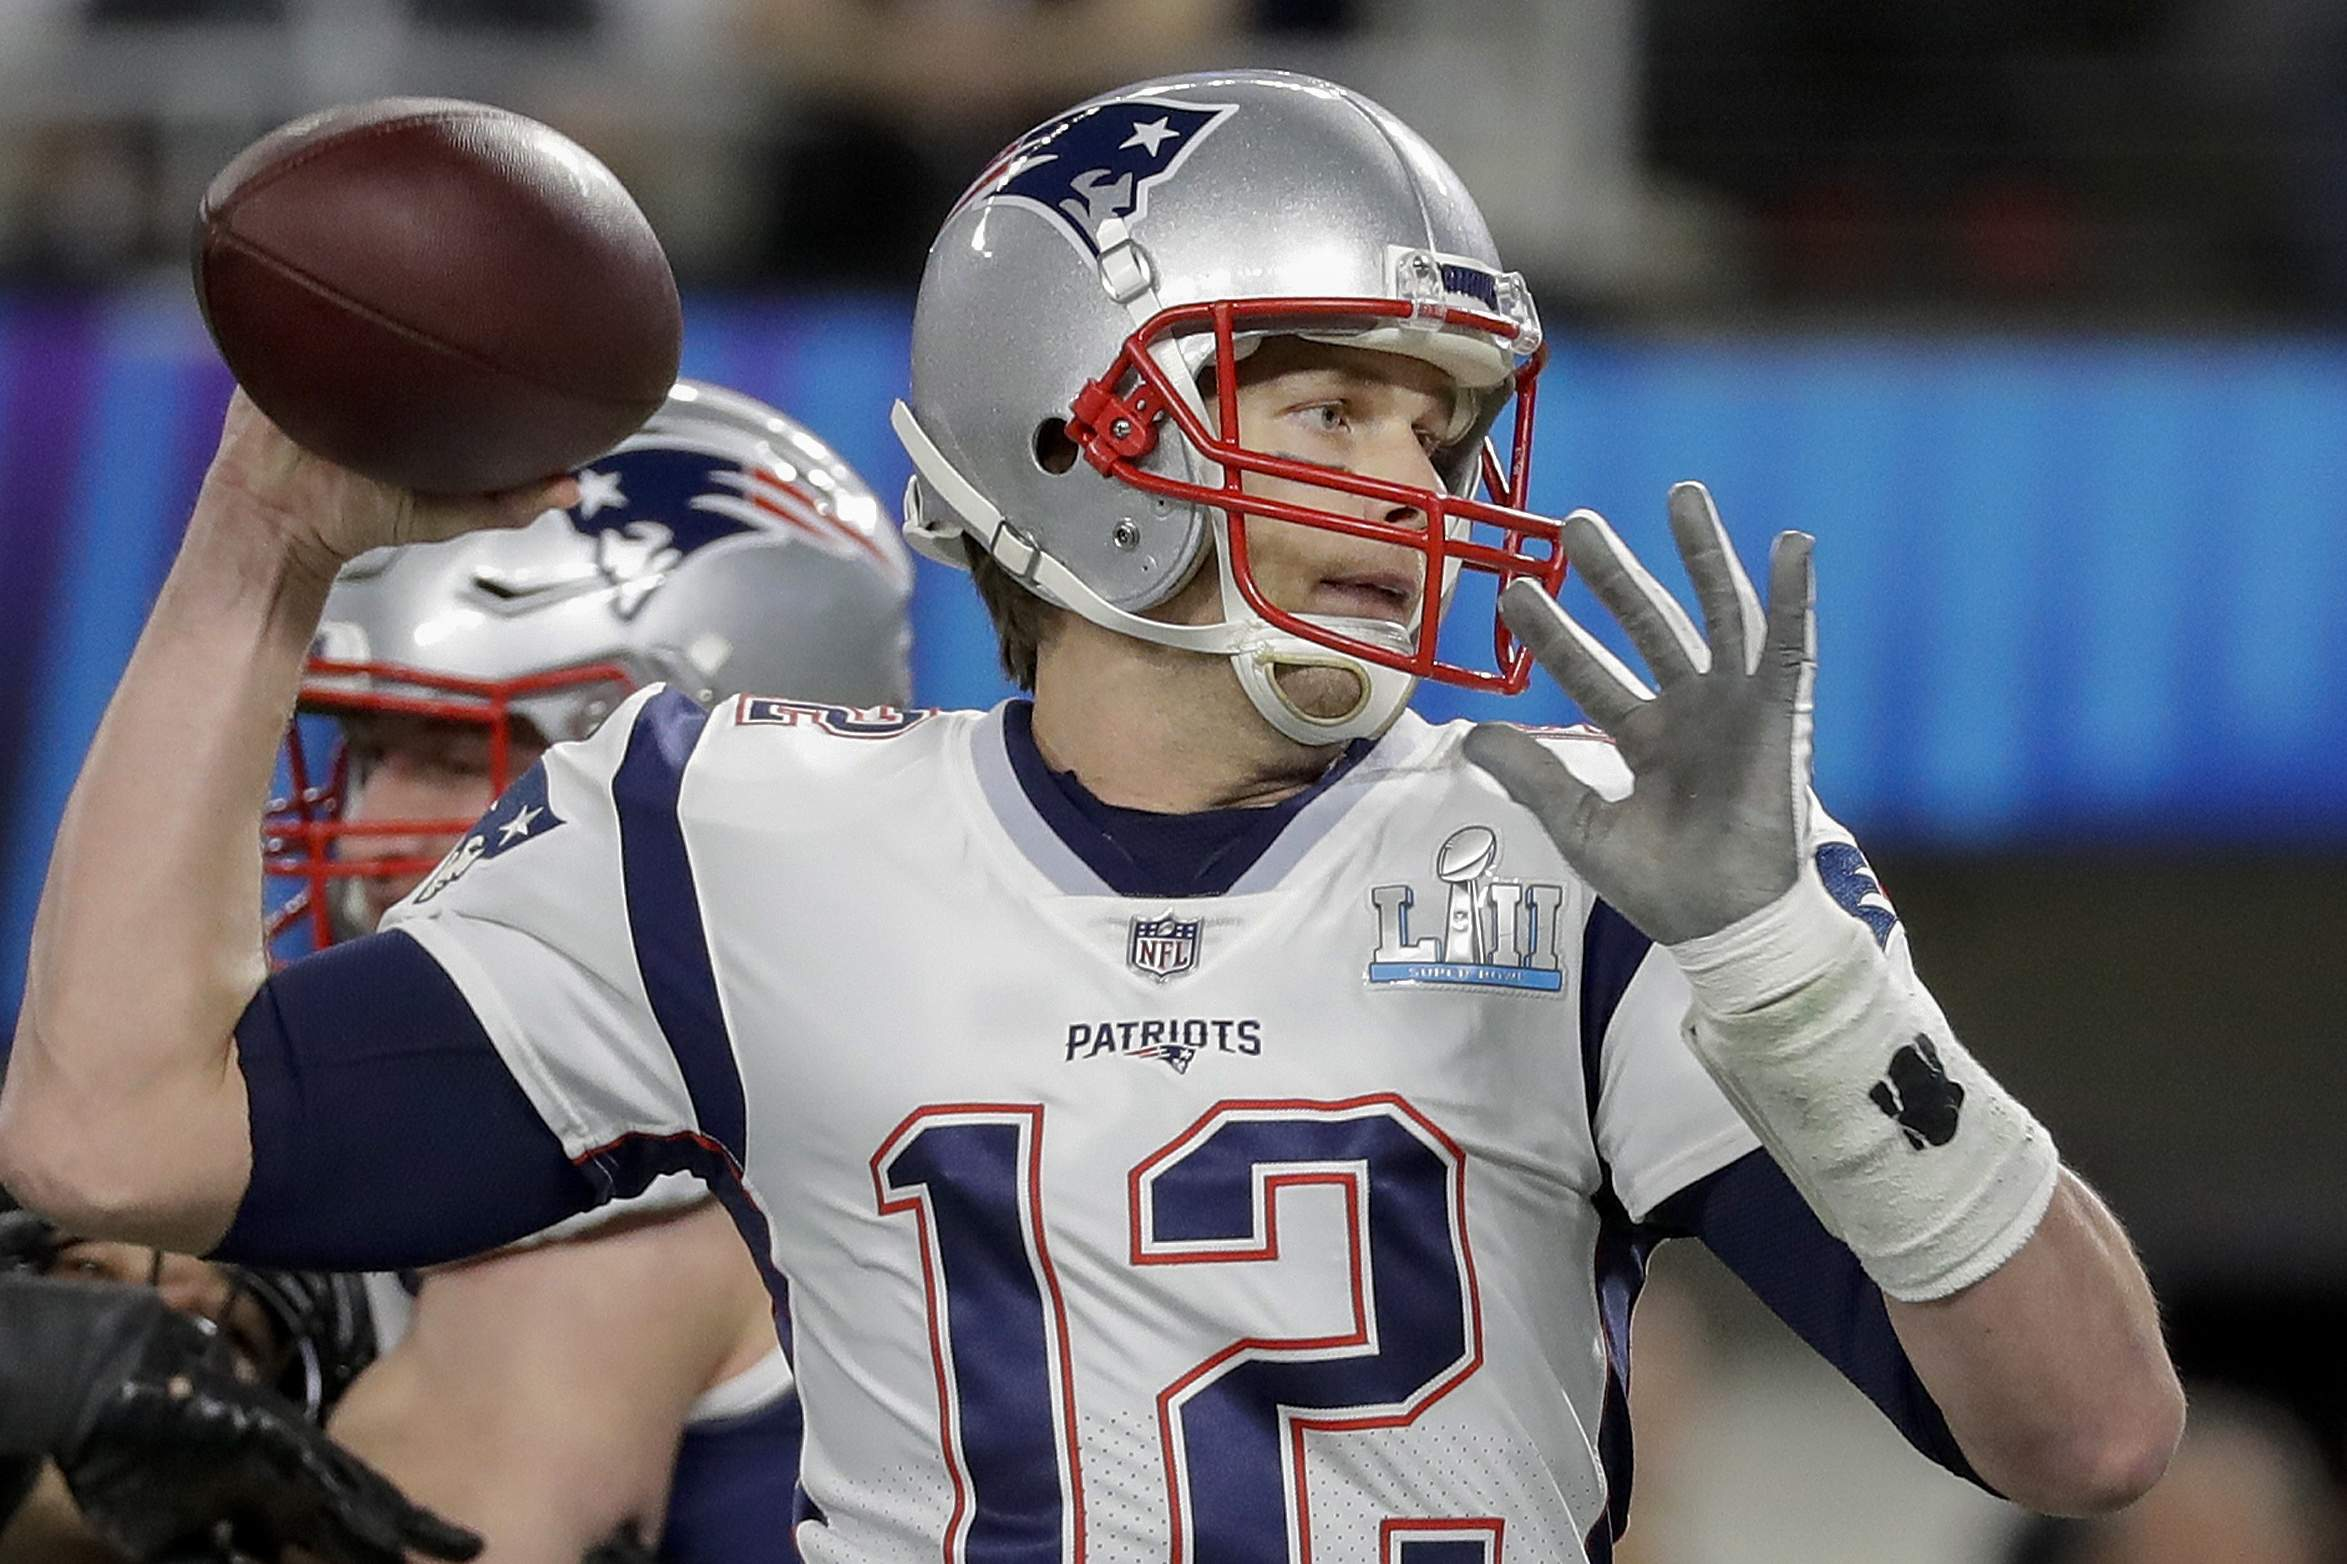 New England Patriots quarterback Tom Brady throws during the first half of the NFL Super Bowl 52 football game against the Philadelphia Eagles Sunday, Feb. 4, 2018, in Minneapolis. (AP Photo/Mark Humphrey)